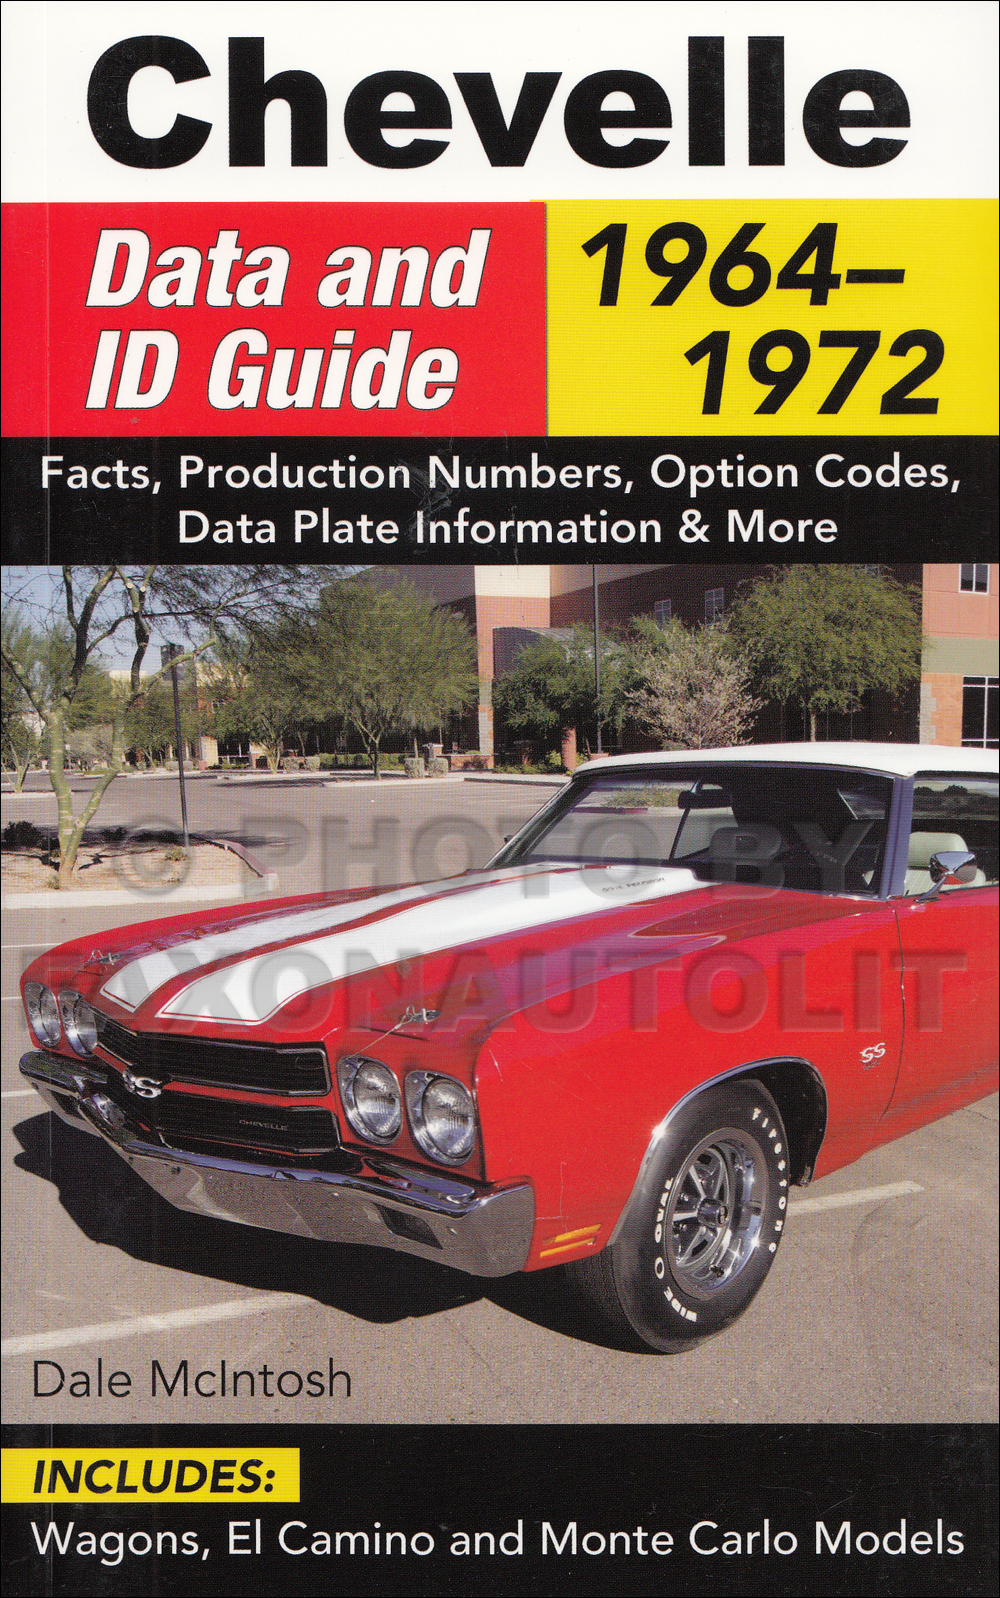 Search 1988 Nissan D21 Vacuum Diagram Truck 1964 1972 Chevrolet Chevelle Data Id Guide Including El Camino And Monte Carlo